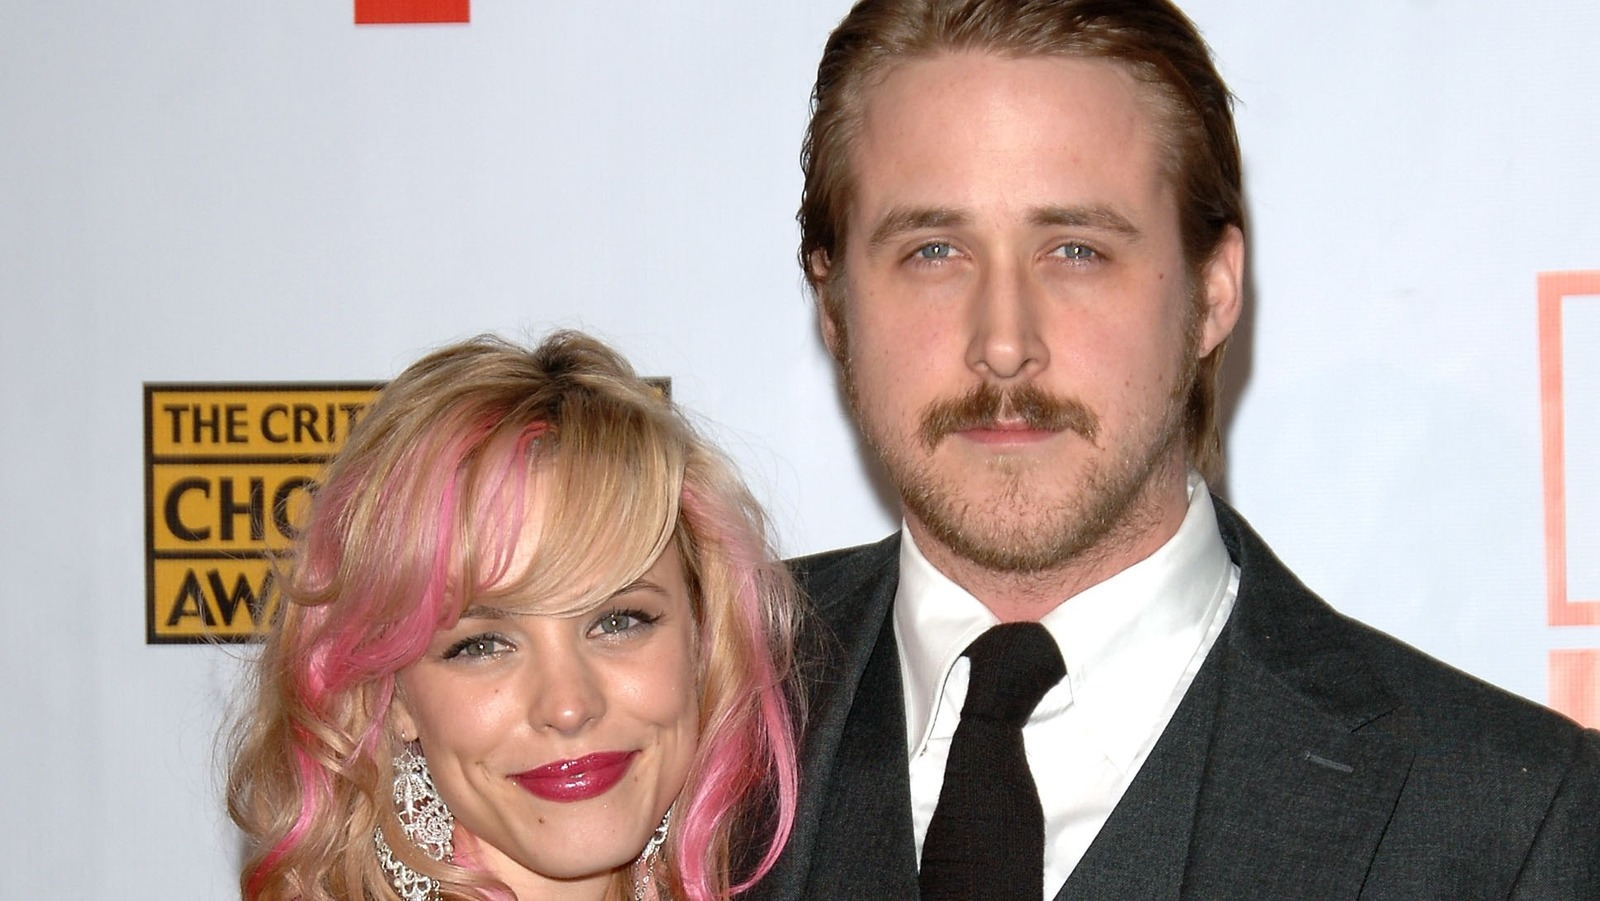 Ryan gosling dated who has Who has